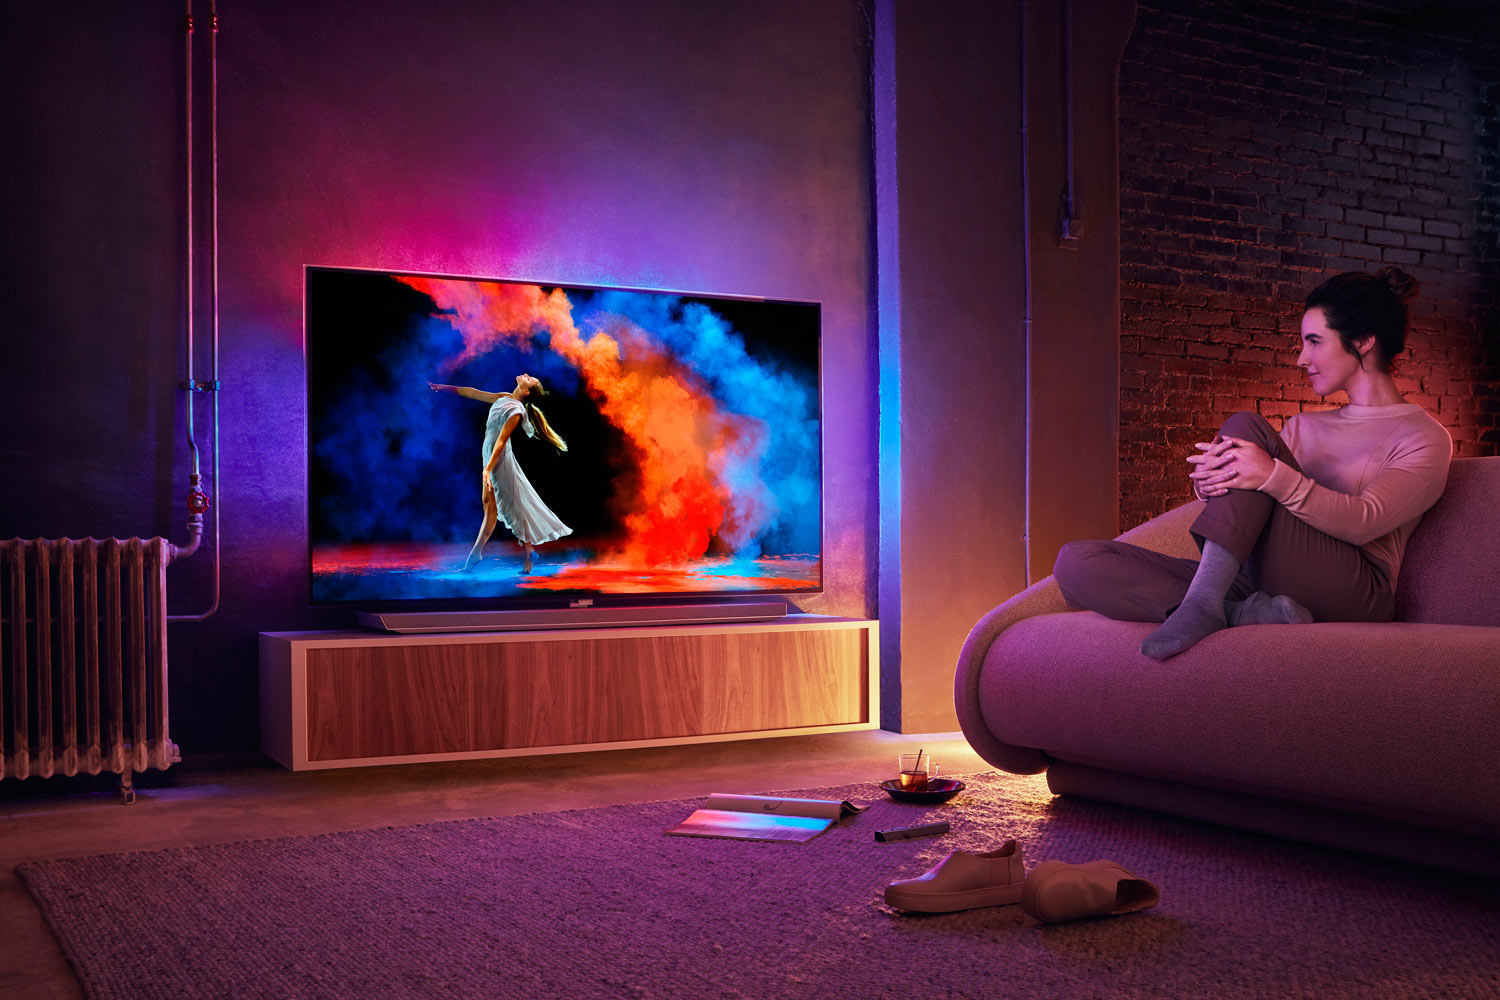 Philips 2018 OLED TV